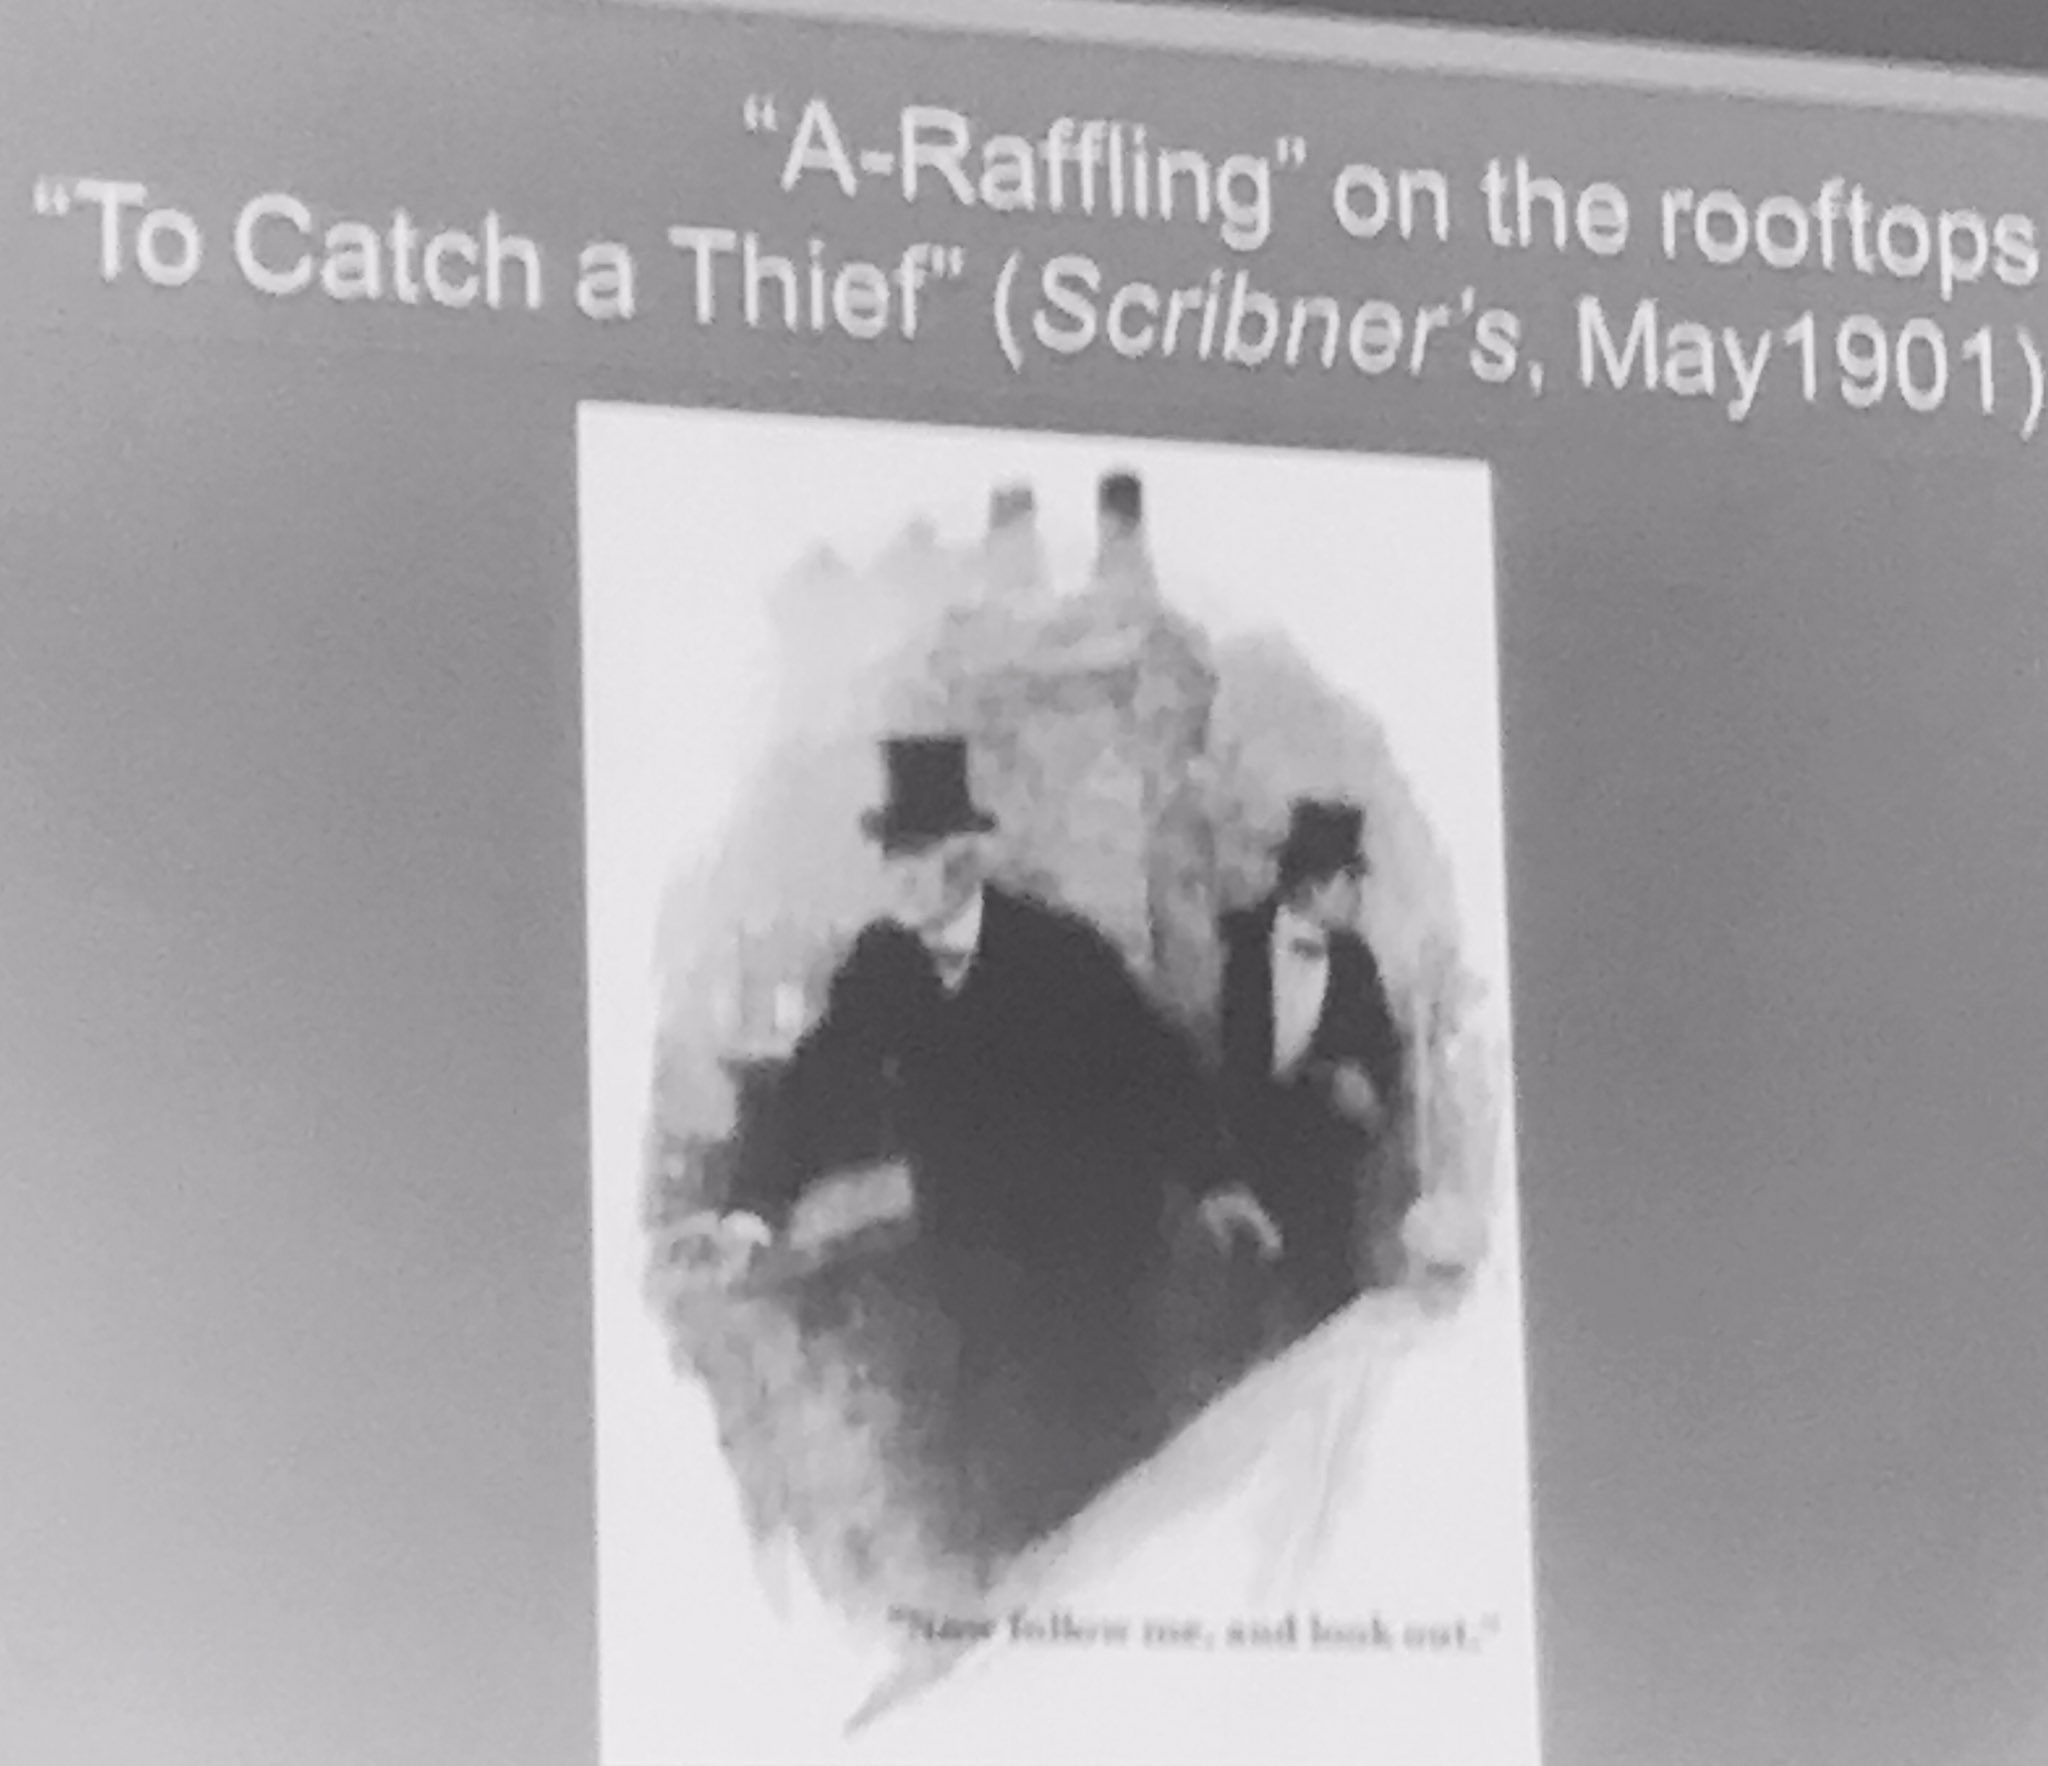 Turner discusses the reinvention of Raffles in Scribner's Magazine - from gentleman thief to wartime hero #rsvp17 https://t.co/ez7vMMMSe1